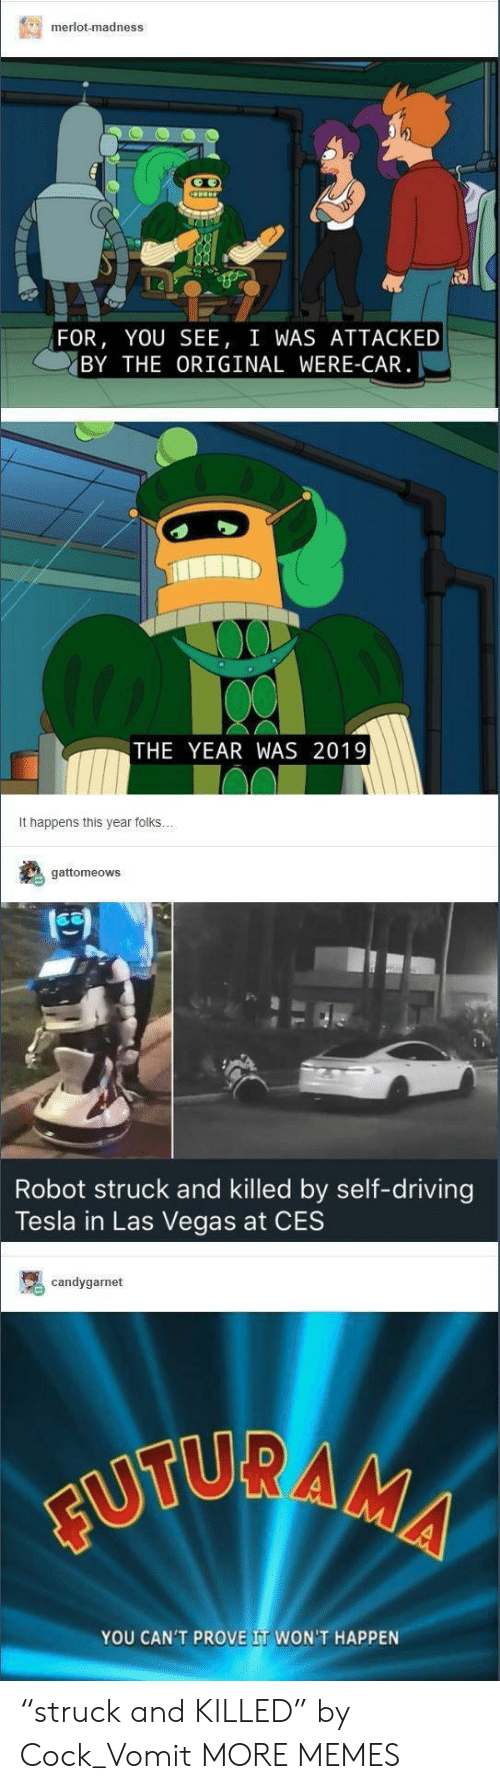 """Vomit: merlot-madness  FOR, YOU SEE, I WAS ATTACKED  BY THE ORIGINAL WERE-CAR  THE YEAR WAS 2019  It happens this year folks  gattomeows  Robot struck and killed by self-driving  Tesla in Las Vegas at CES  candygarnet  YOU CAN'T PROVE IT WON'T HAPPEN """"struck and KILLED"""" by Cock_Vomit MORE MEMES"""